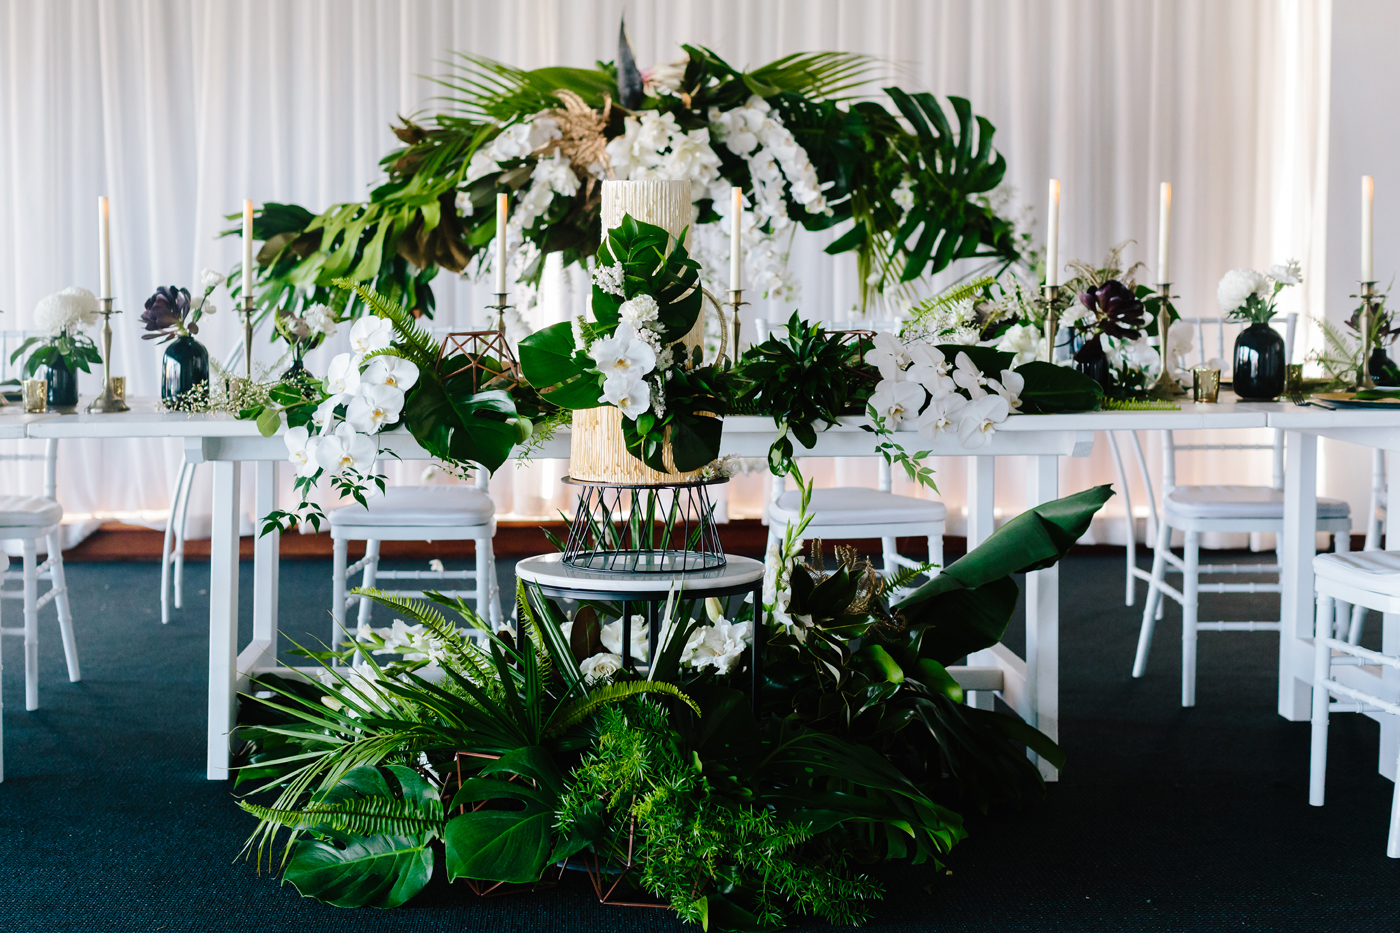 PUWG Nedlands Shoot - Perth Ultimate Wedding Giveaway Styled Shoot from Nedlands Yacht Club.